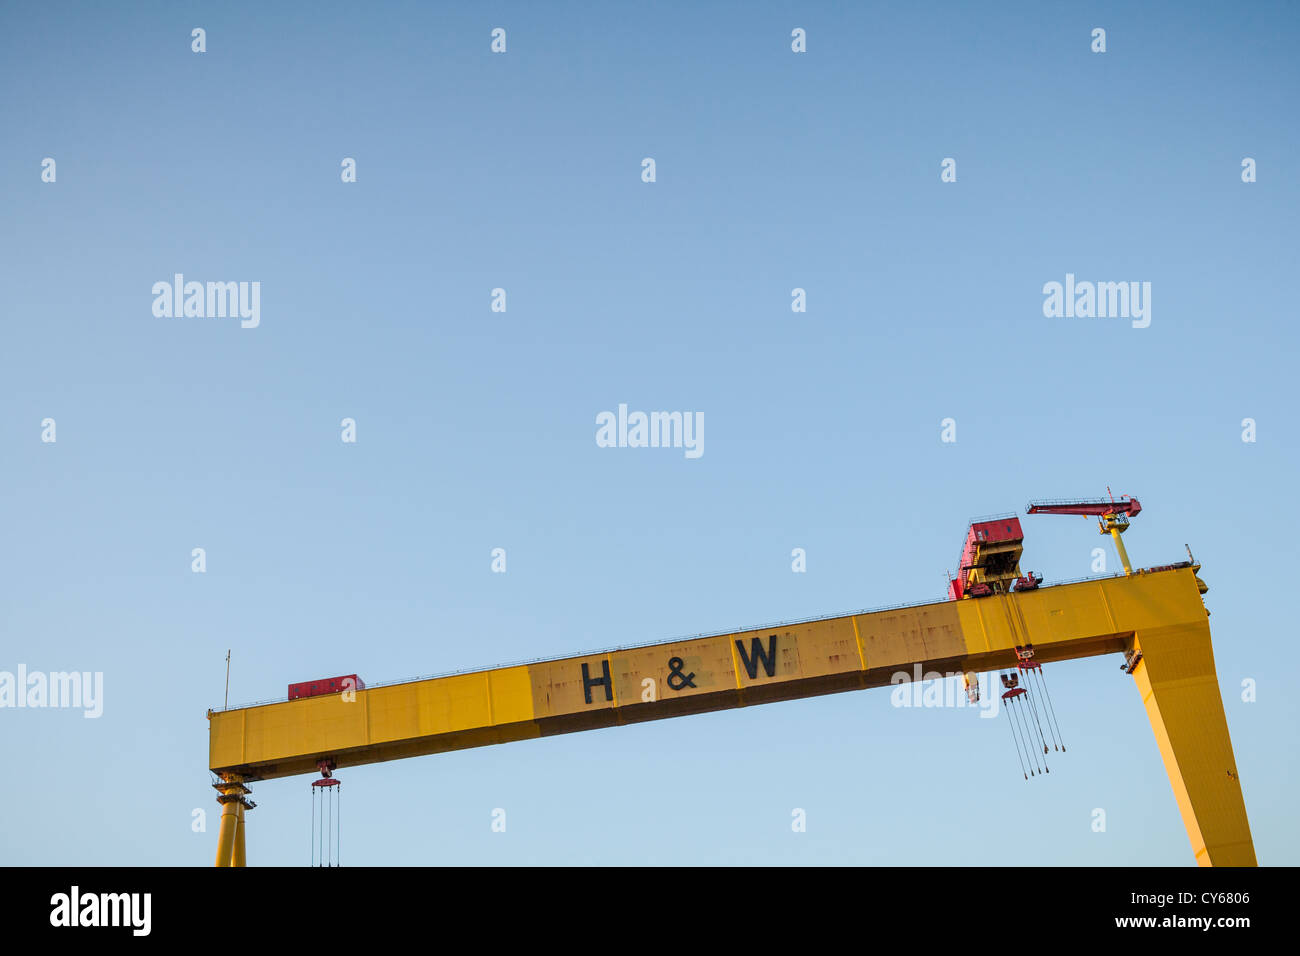 Harland and Wolff Cranes at Belfast Docks. - Stock Image